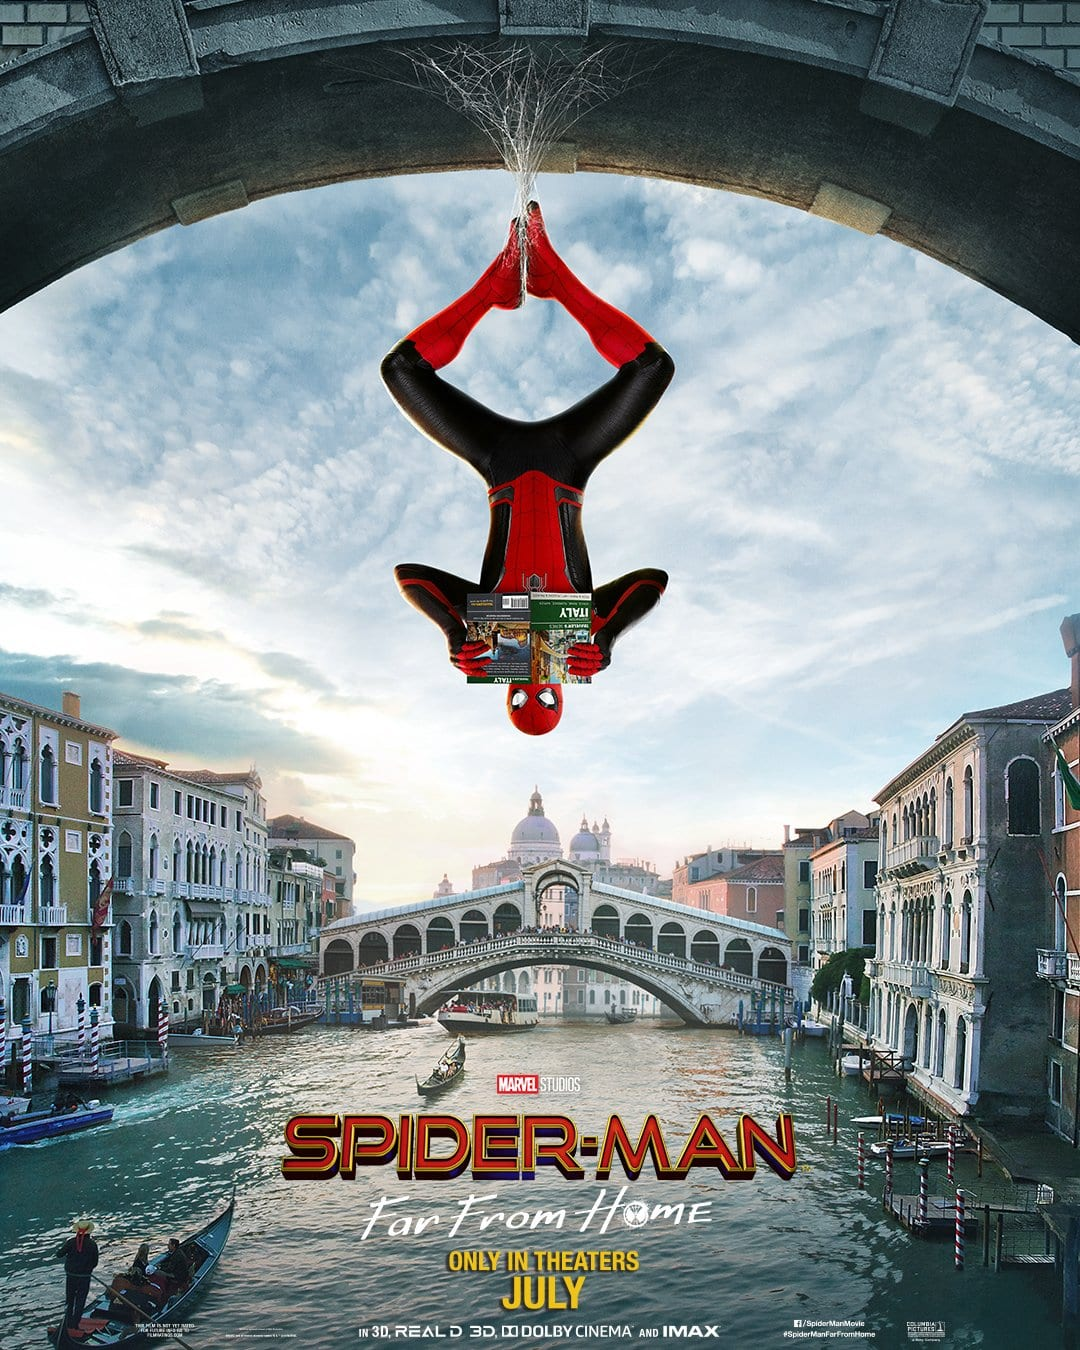 Spider-Man: Far from Home (Source: @SpiderManMovie on Twitter)